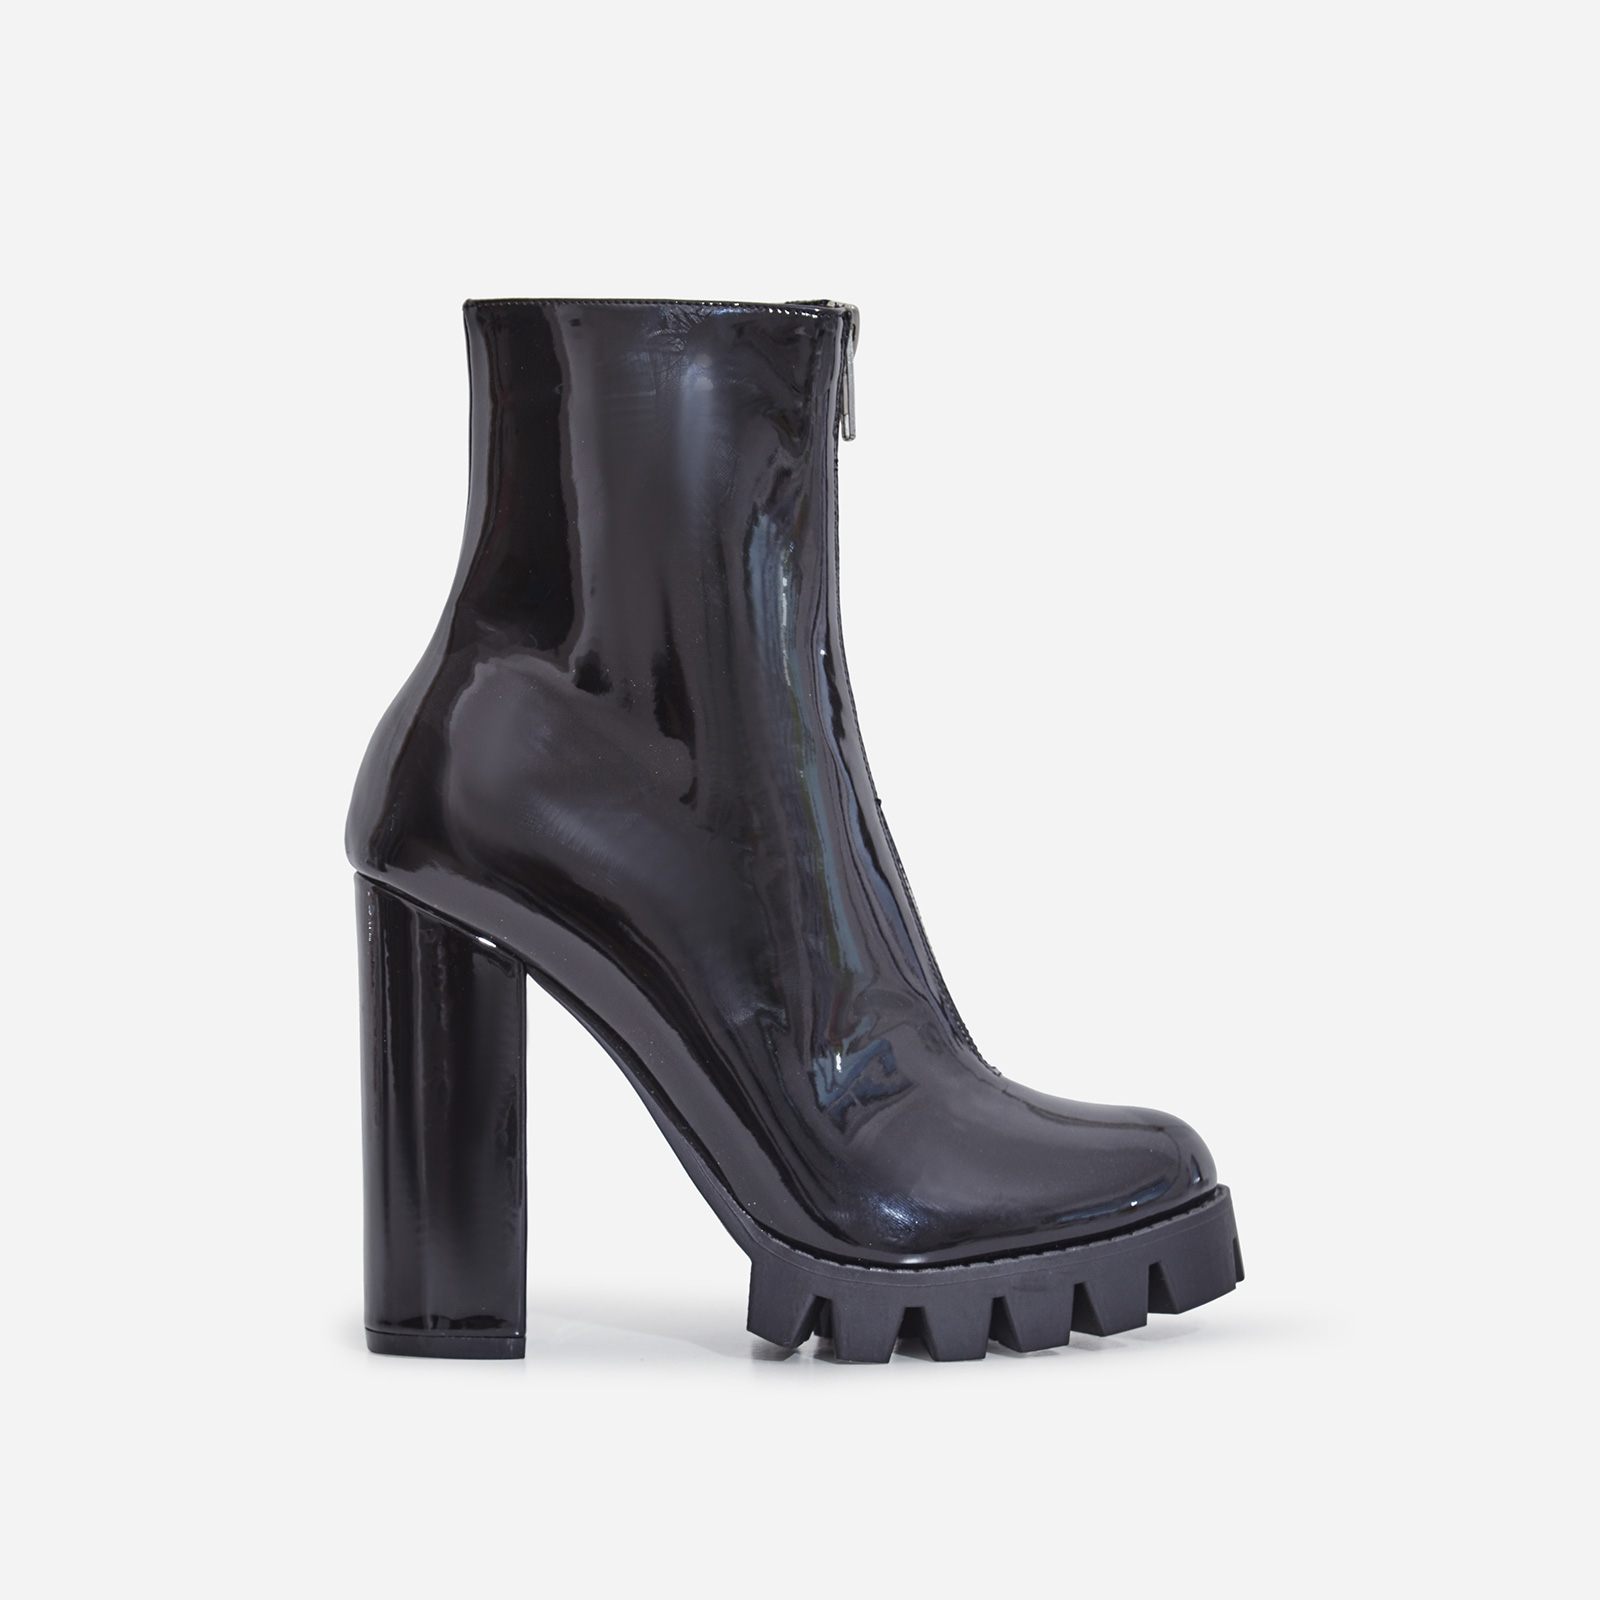 Mamba Zip Detail Cleated Sole Ankle Boot In Black Patent